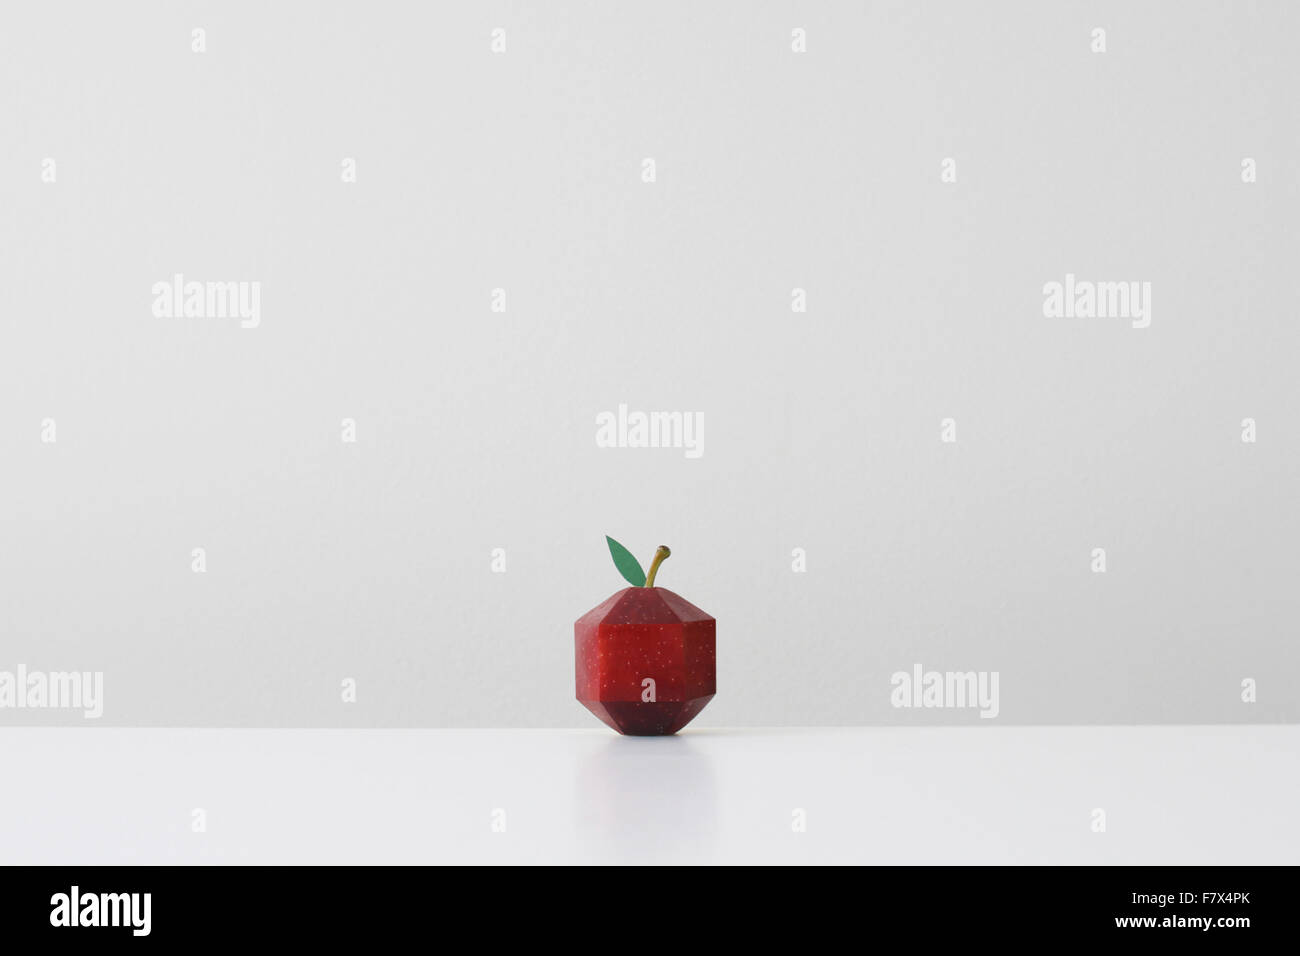 Red apple crafted into geometric shape imitating paper origami - Stock Image